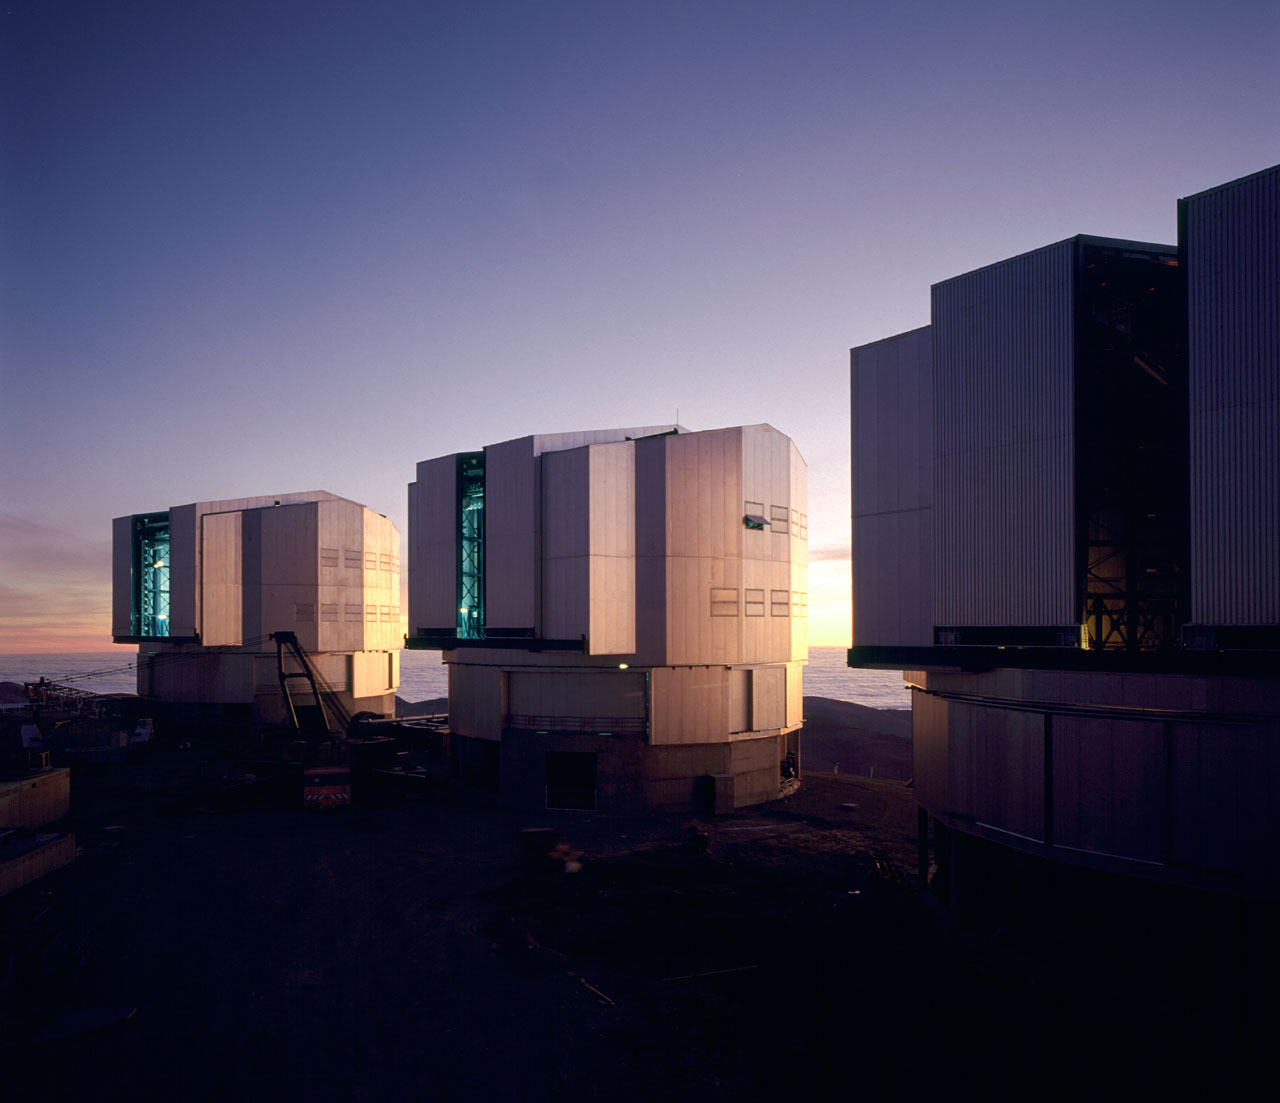 VLT Unit Telescopes